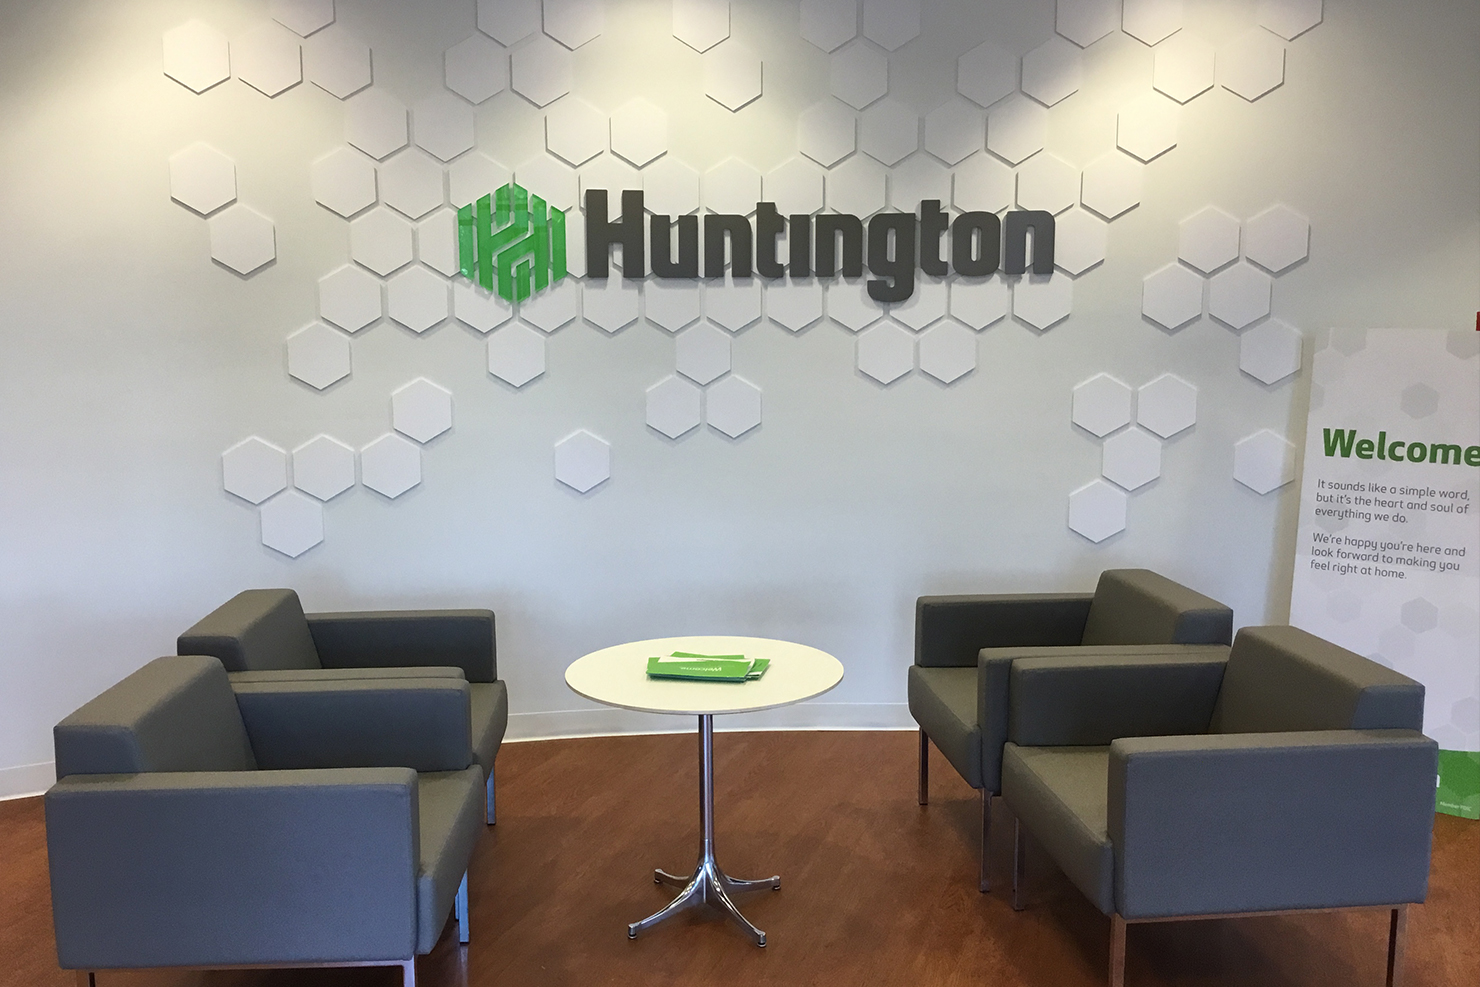 Banks and Financial Institutions - Huntington bank